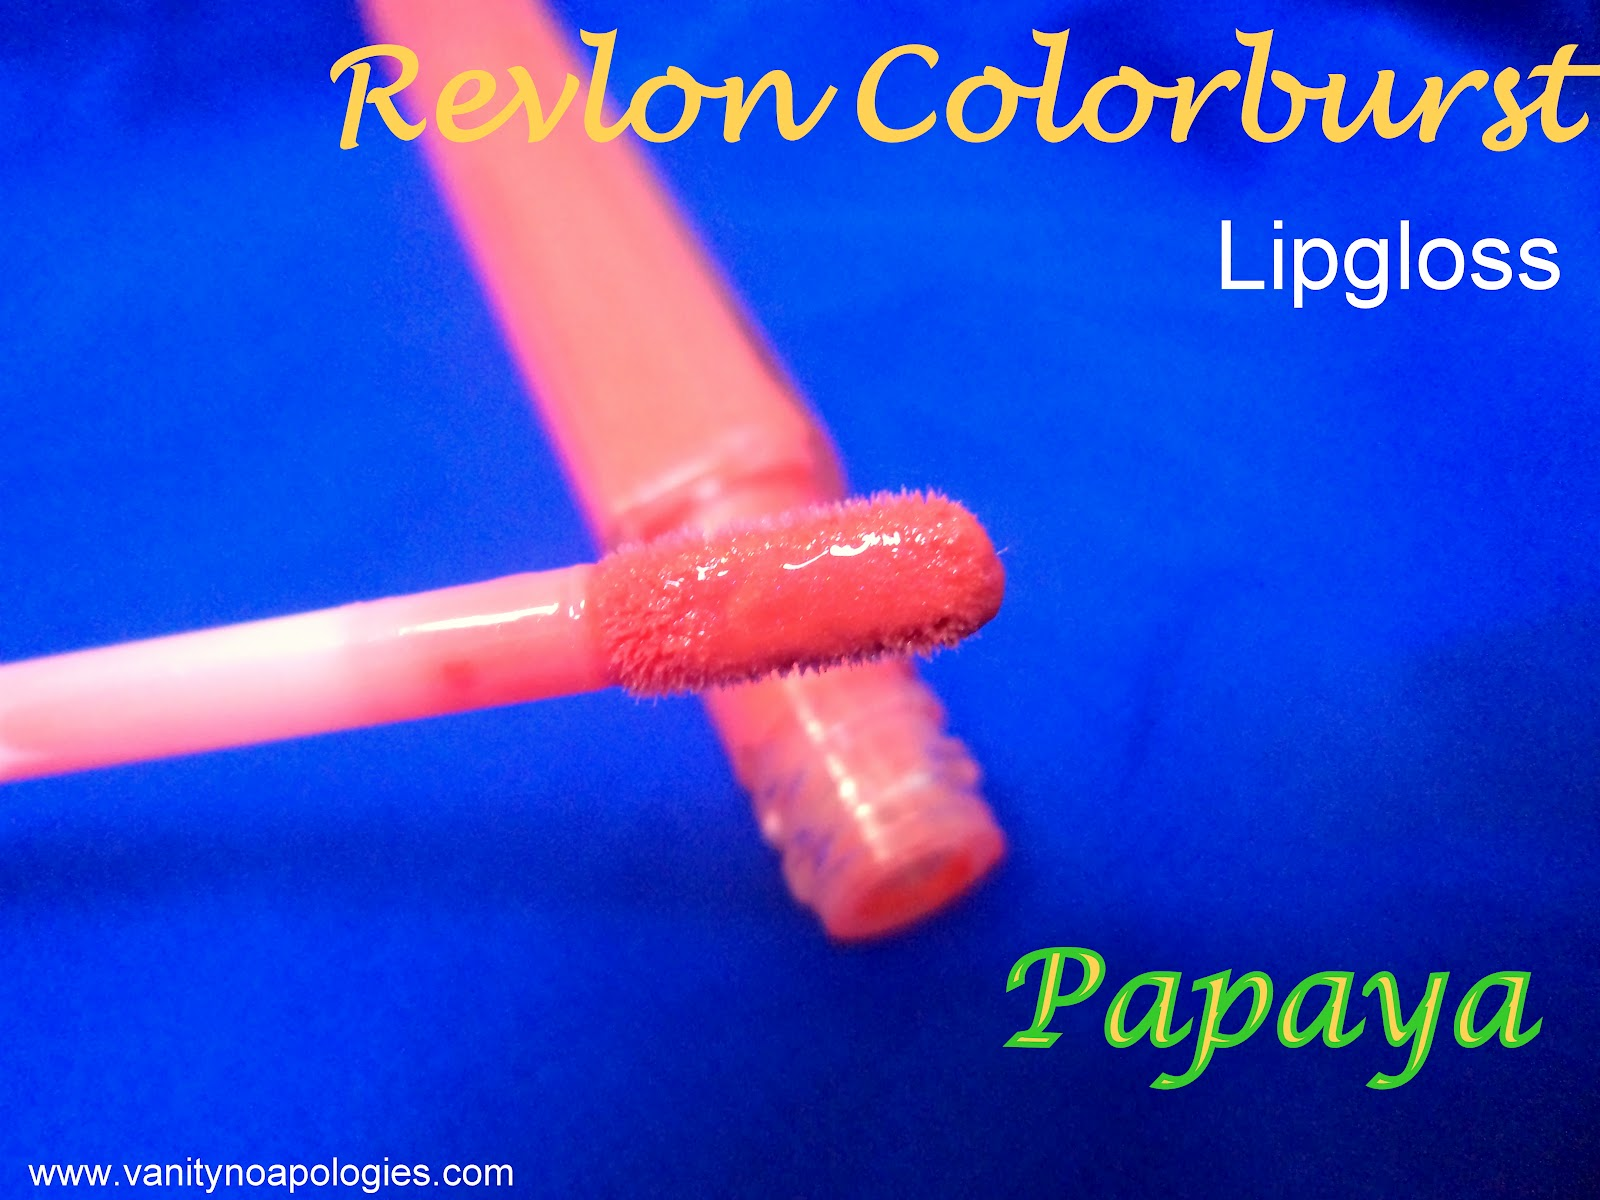 Electric Shock Lip Powder - All The Way Up by Revlon #22